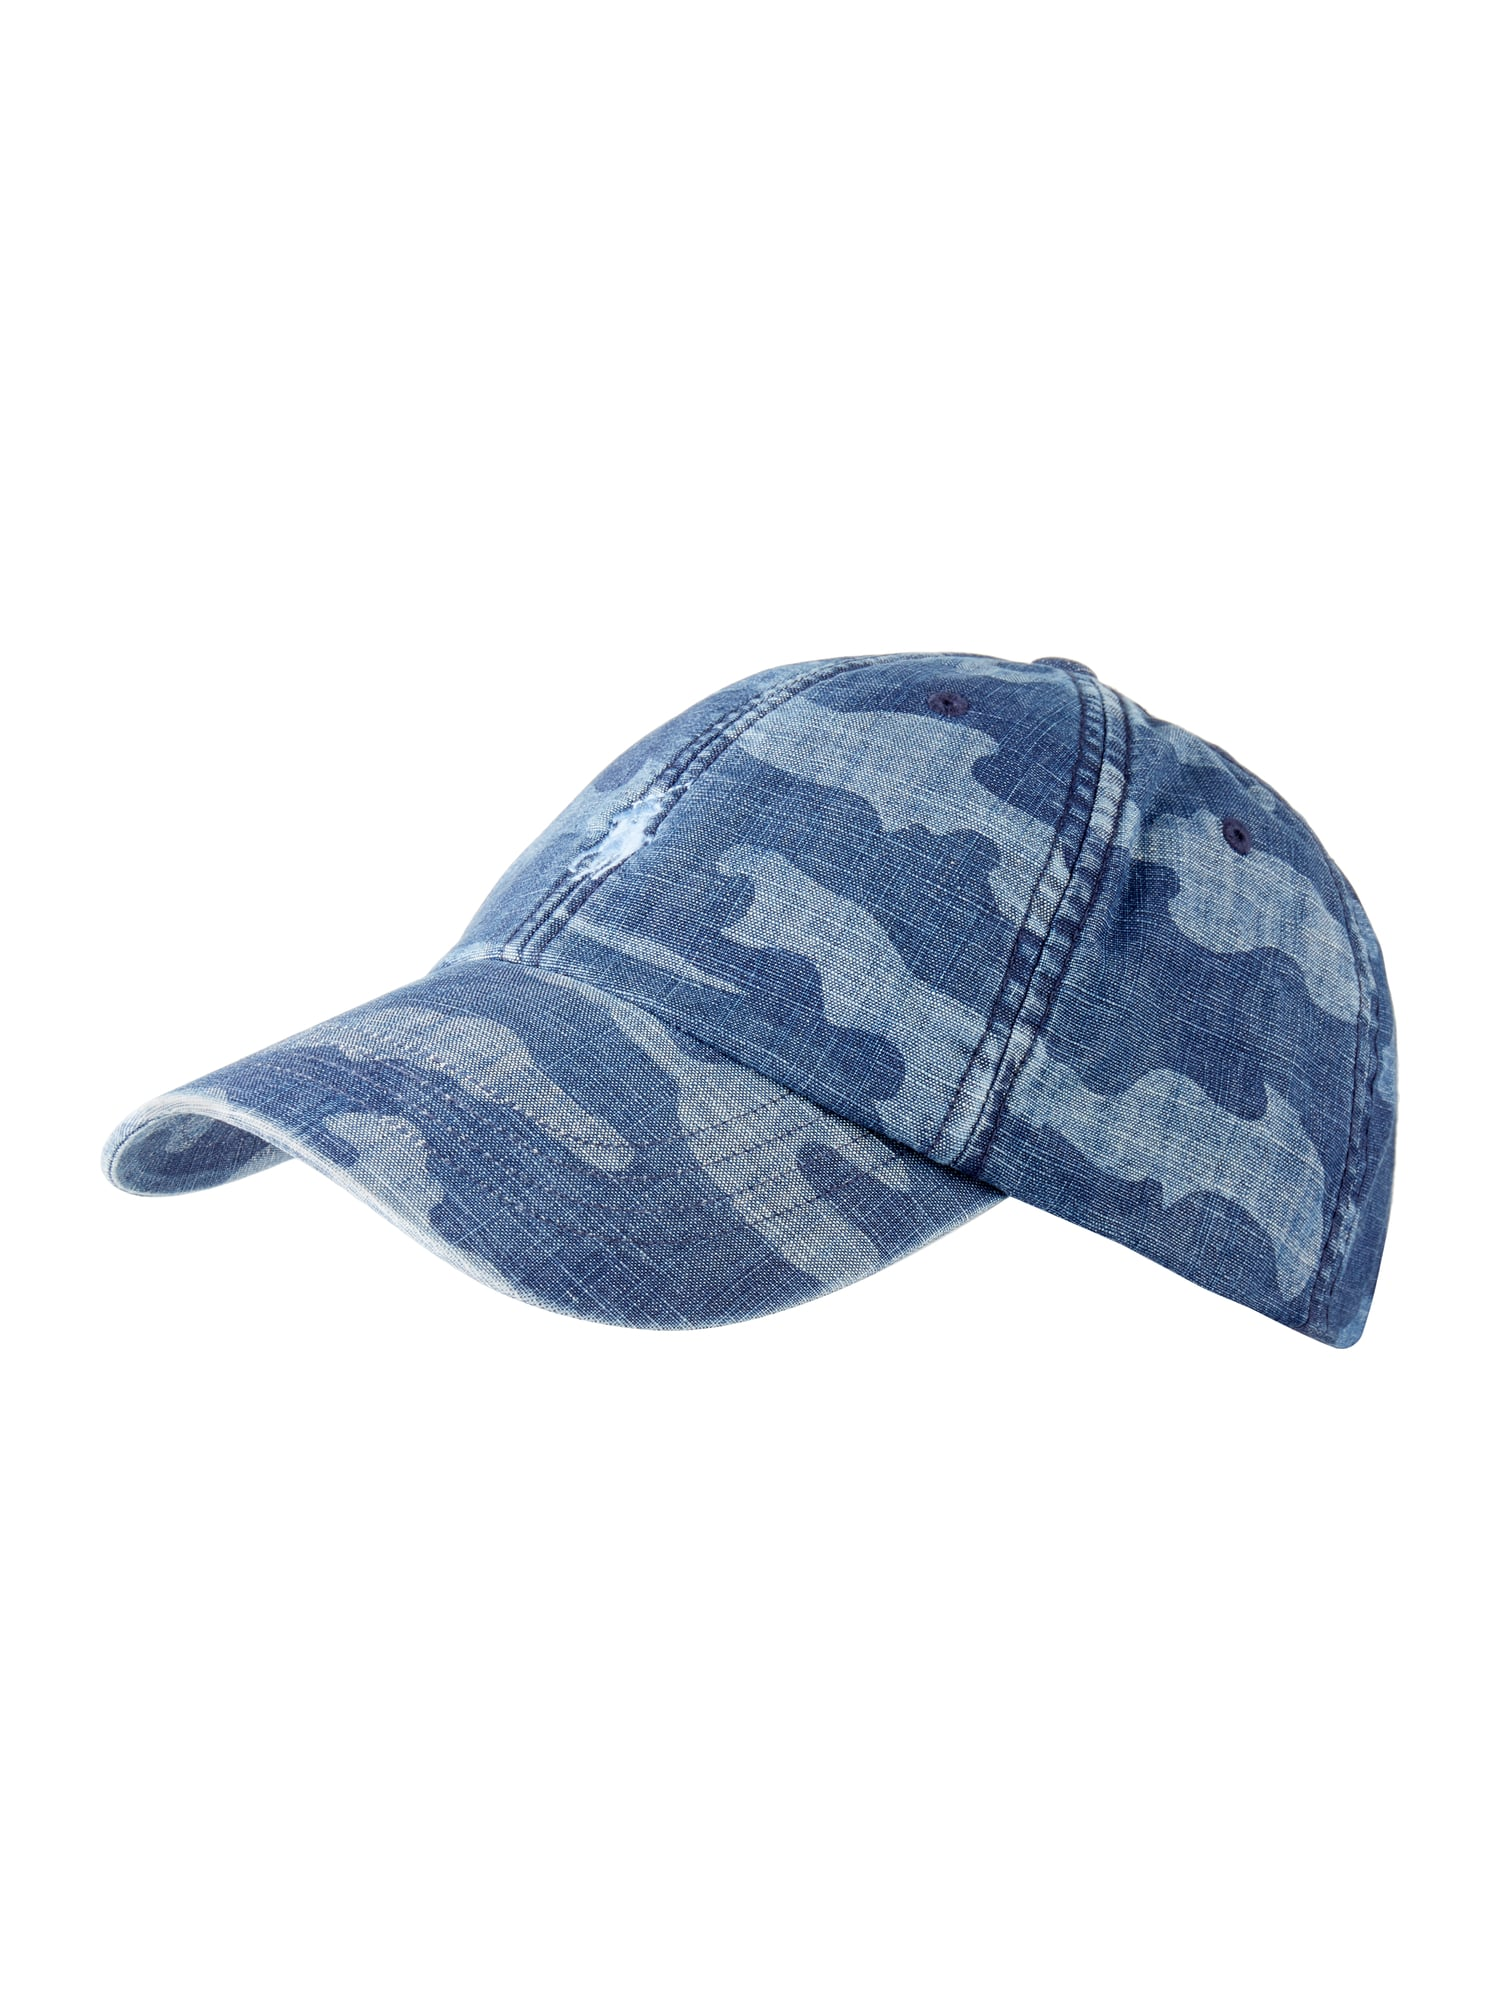 polo ralph lauren basecap mit camouflage muster in blau. Black Bedroom Furniture Sets. Home Design Ideas